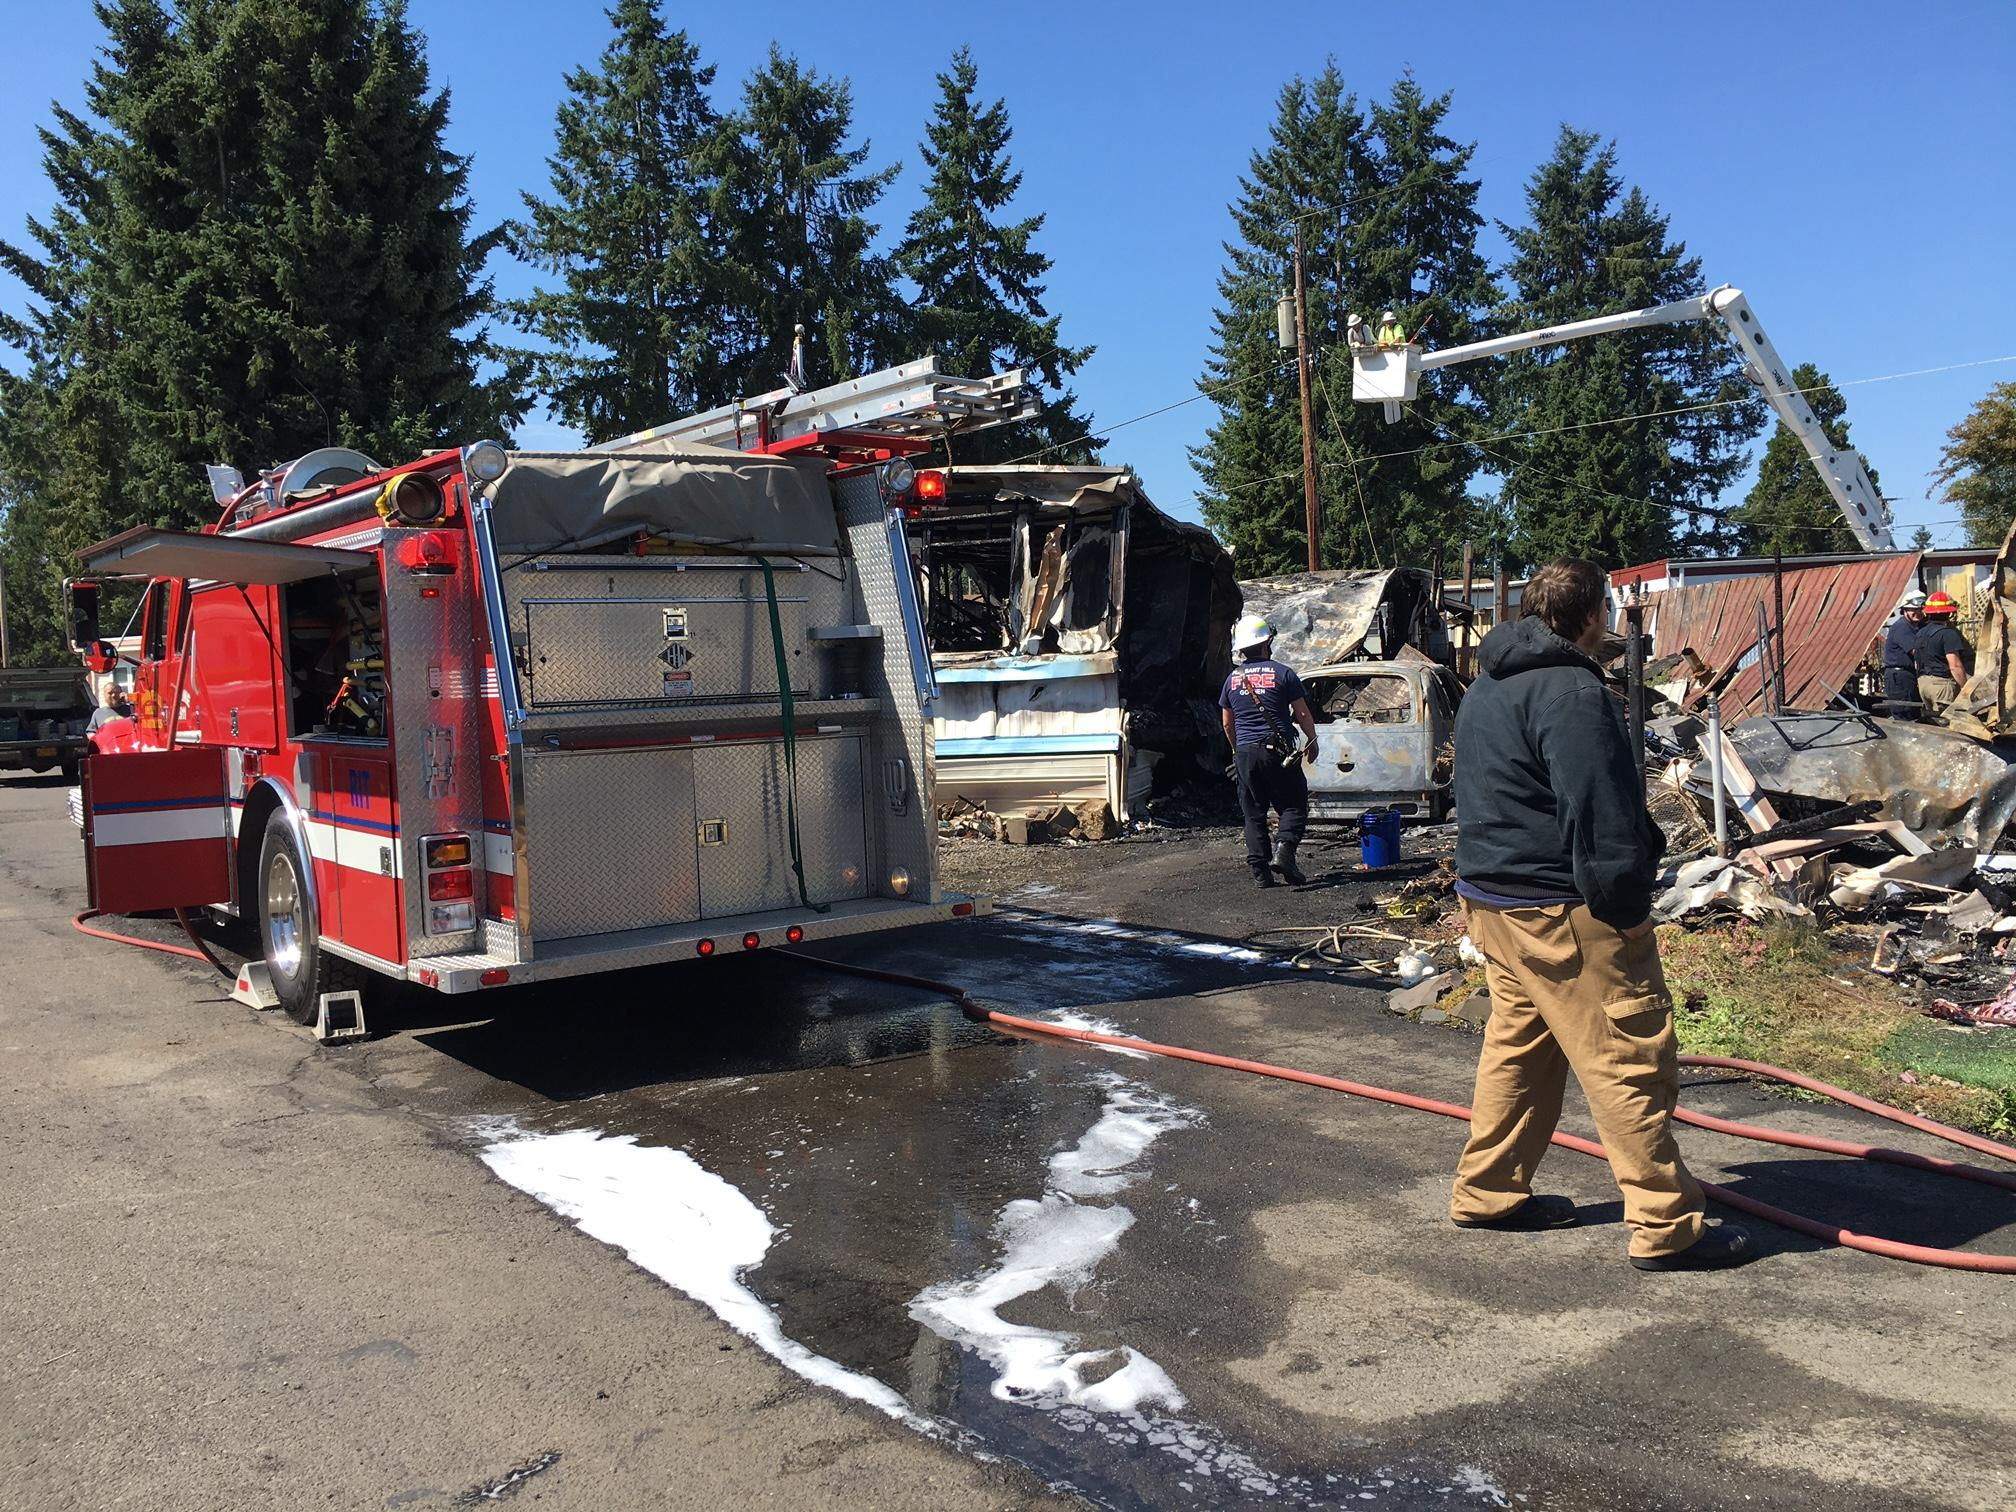 A fire at Bella Casa Mobile Home Park on Edenvale Road in Pleasant Hill affected 3 homes and displaced 7 residents, July 17, 2017. (SBG photo)